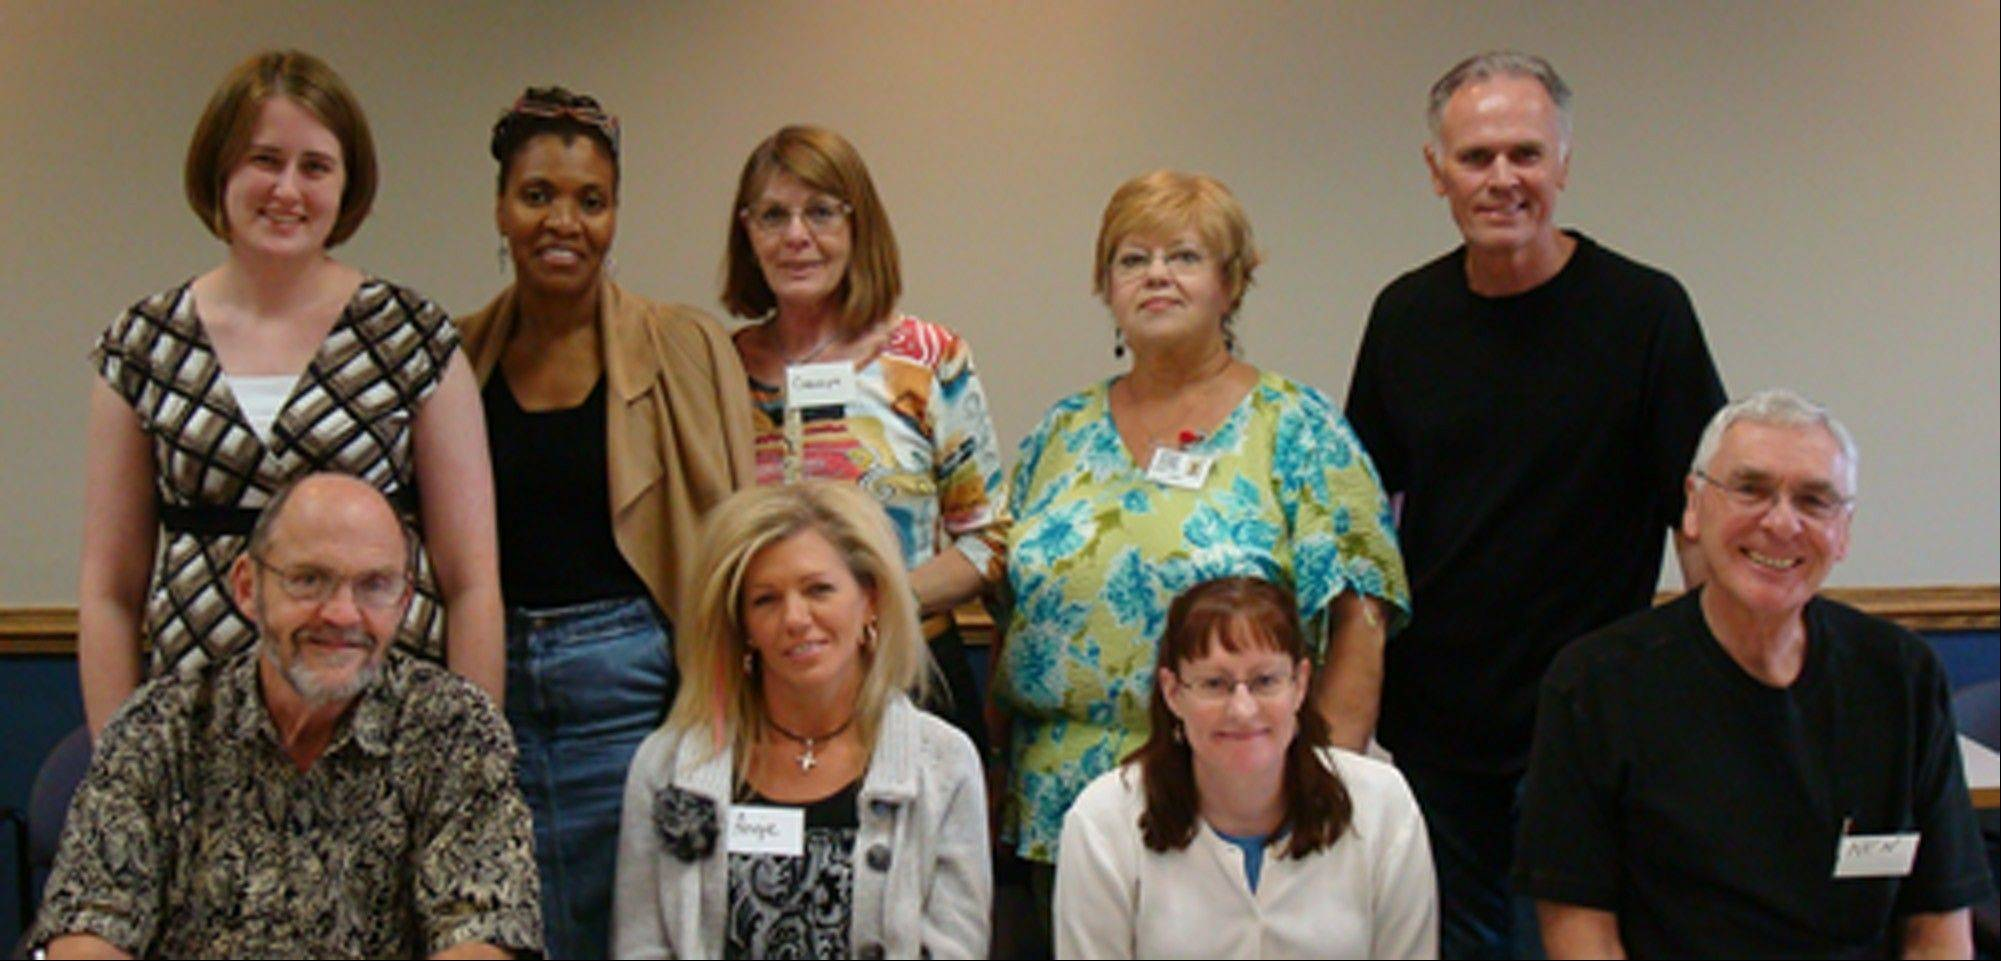 These community members recently completed Fox Valley Volunteer Hospice's Bereavement Training Program. From left, front row, are John Uhrich, Angie McKinney, Donna Newbold and Ken Karczewski; back row, Marrisa Rakes, Carla Grossett, Carolyn Pugh, Connie Jeske and Rob Anderson. These volunteers represent Algonquin, Elgin, St. Charles, Geneva, Warrenville, North Aurora, Naperville and Sugar Grove.